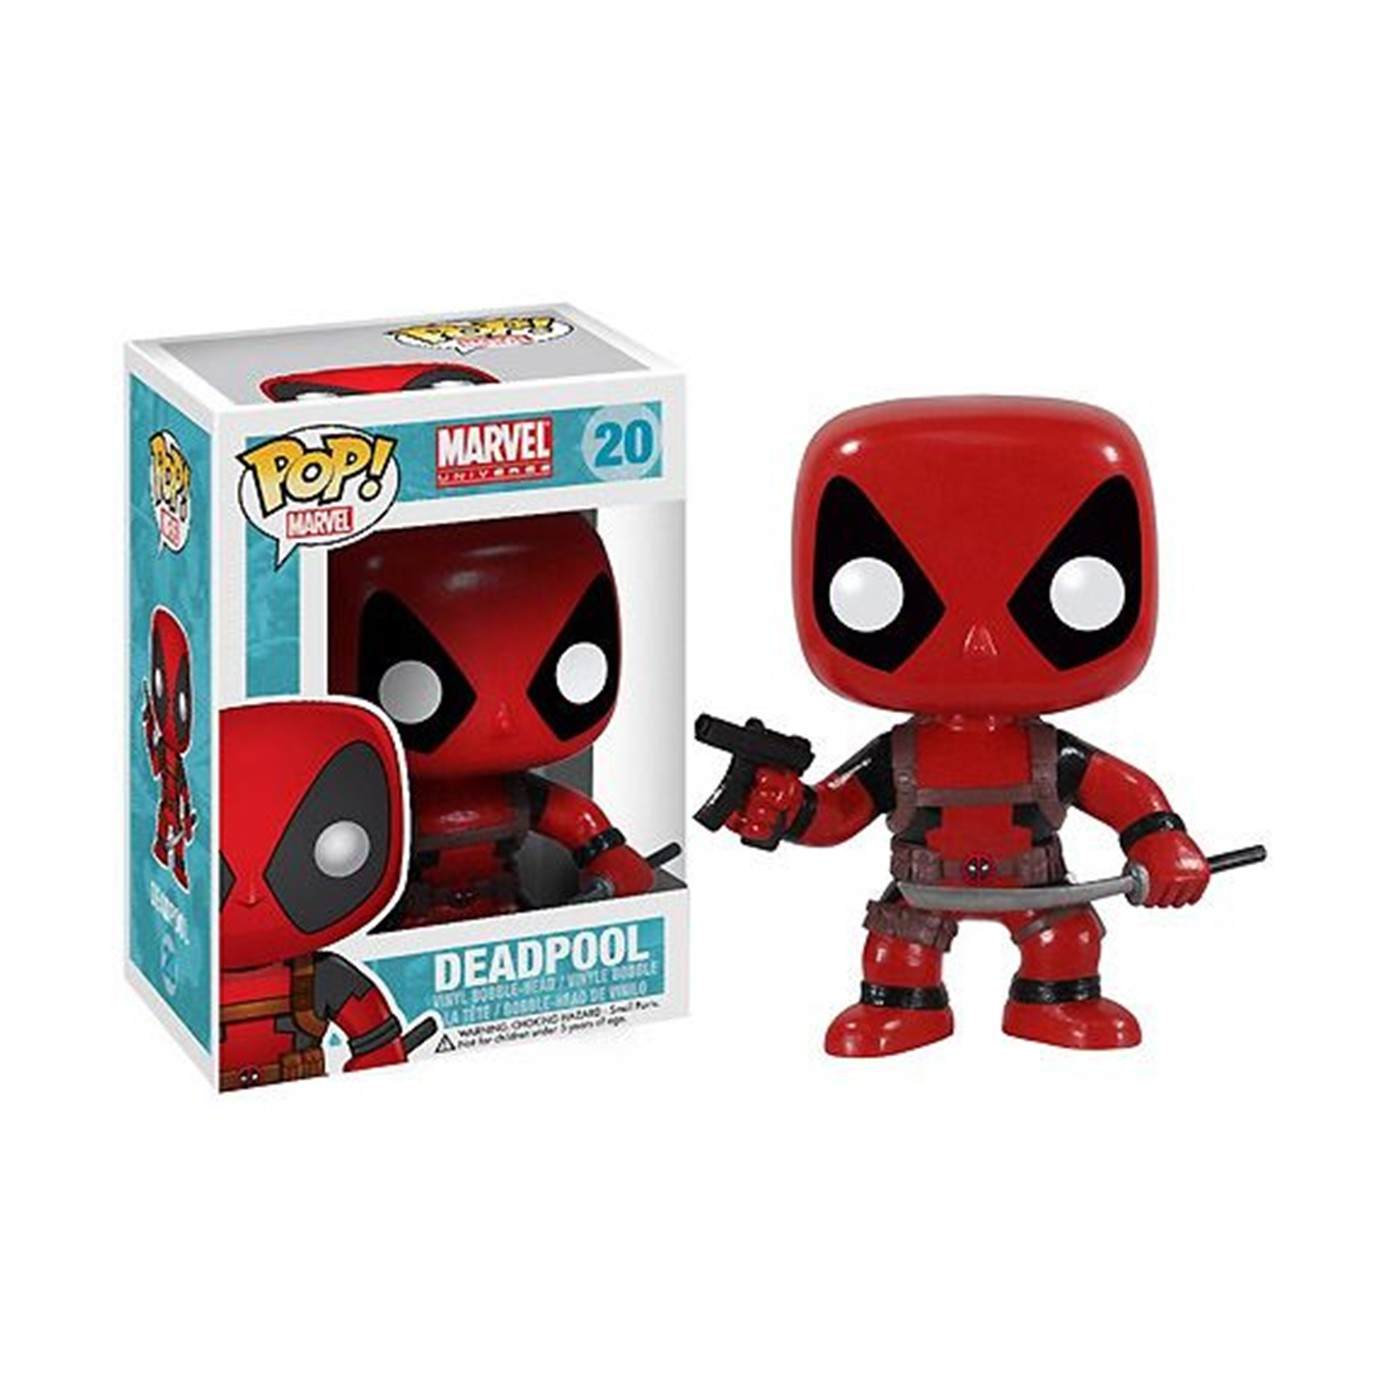 Deadpool POP Bobble Head